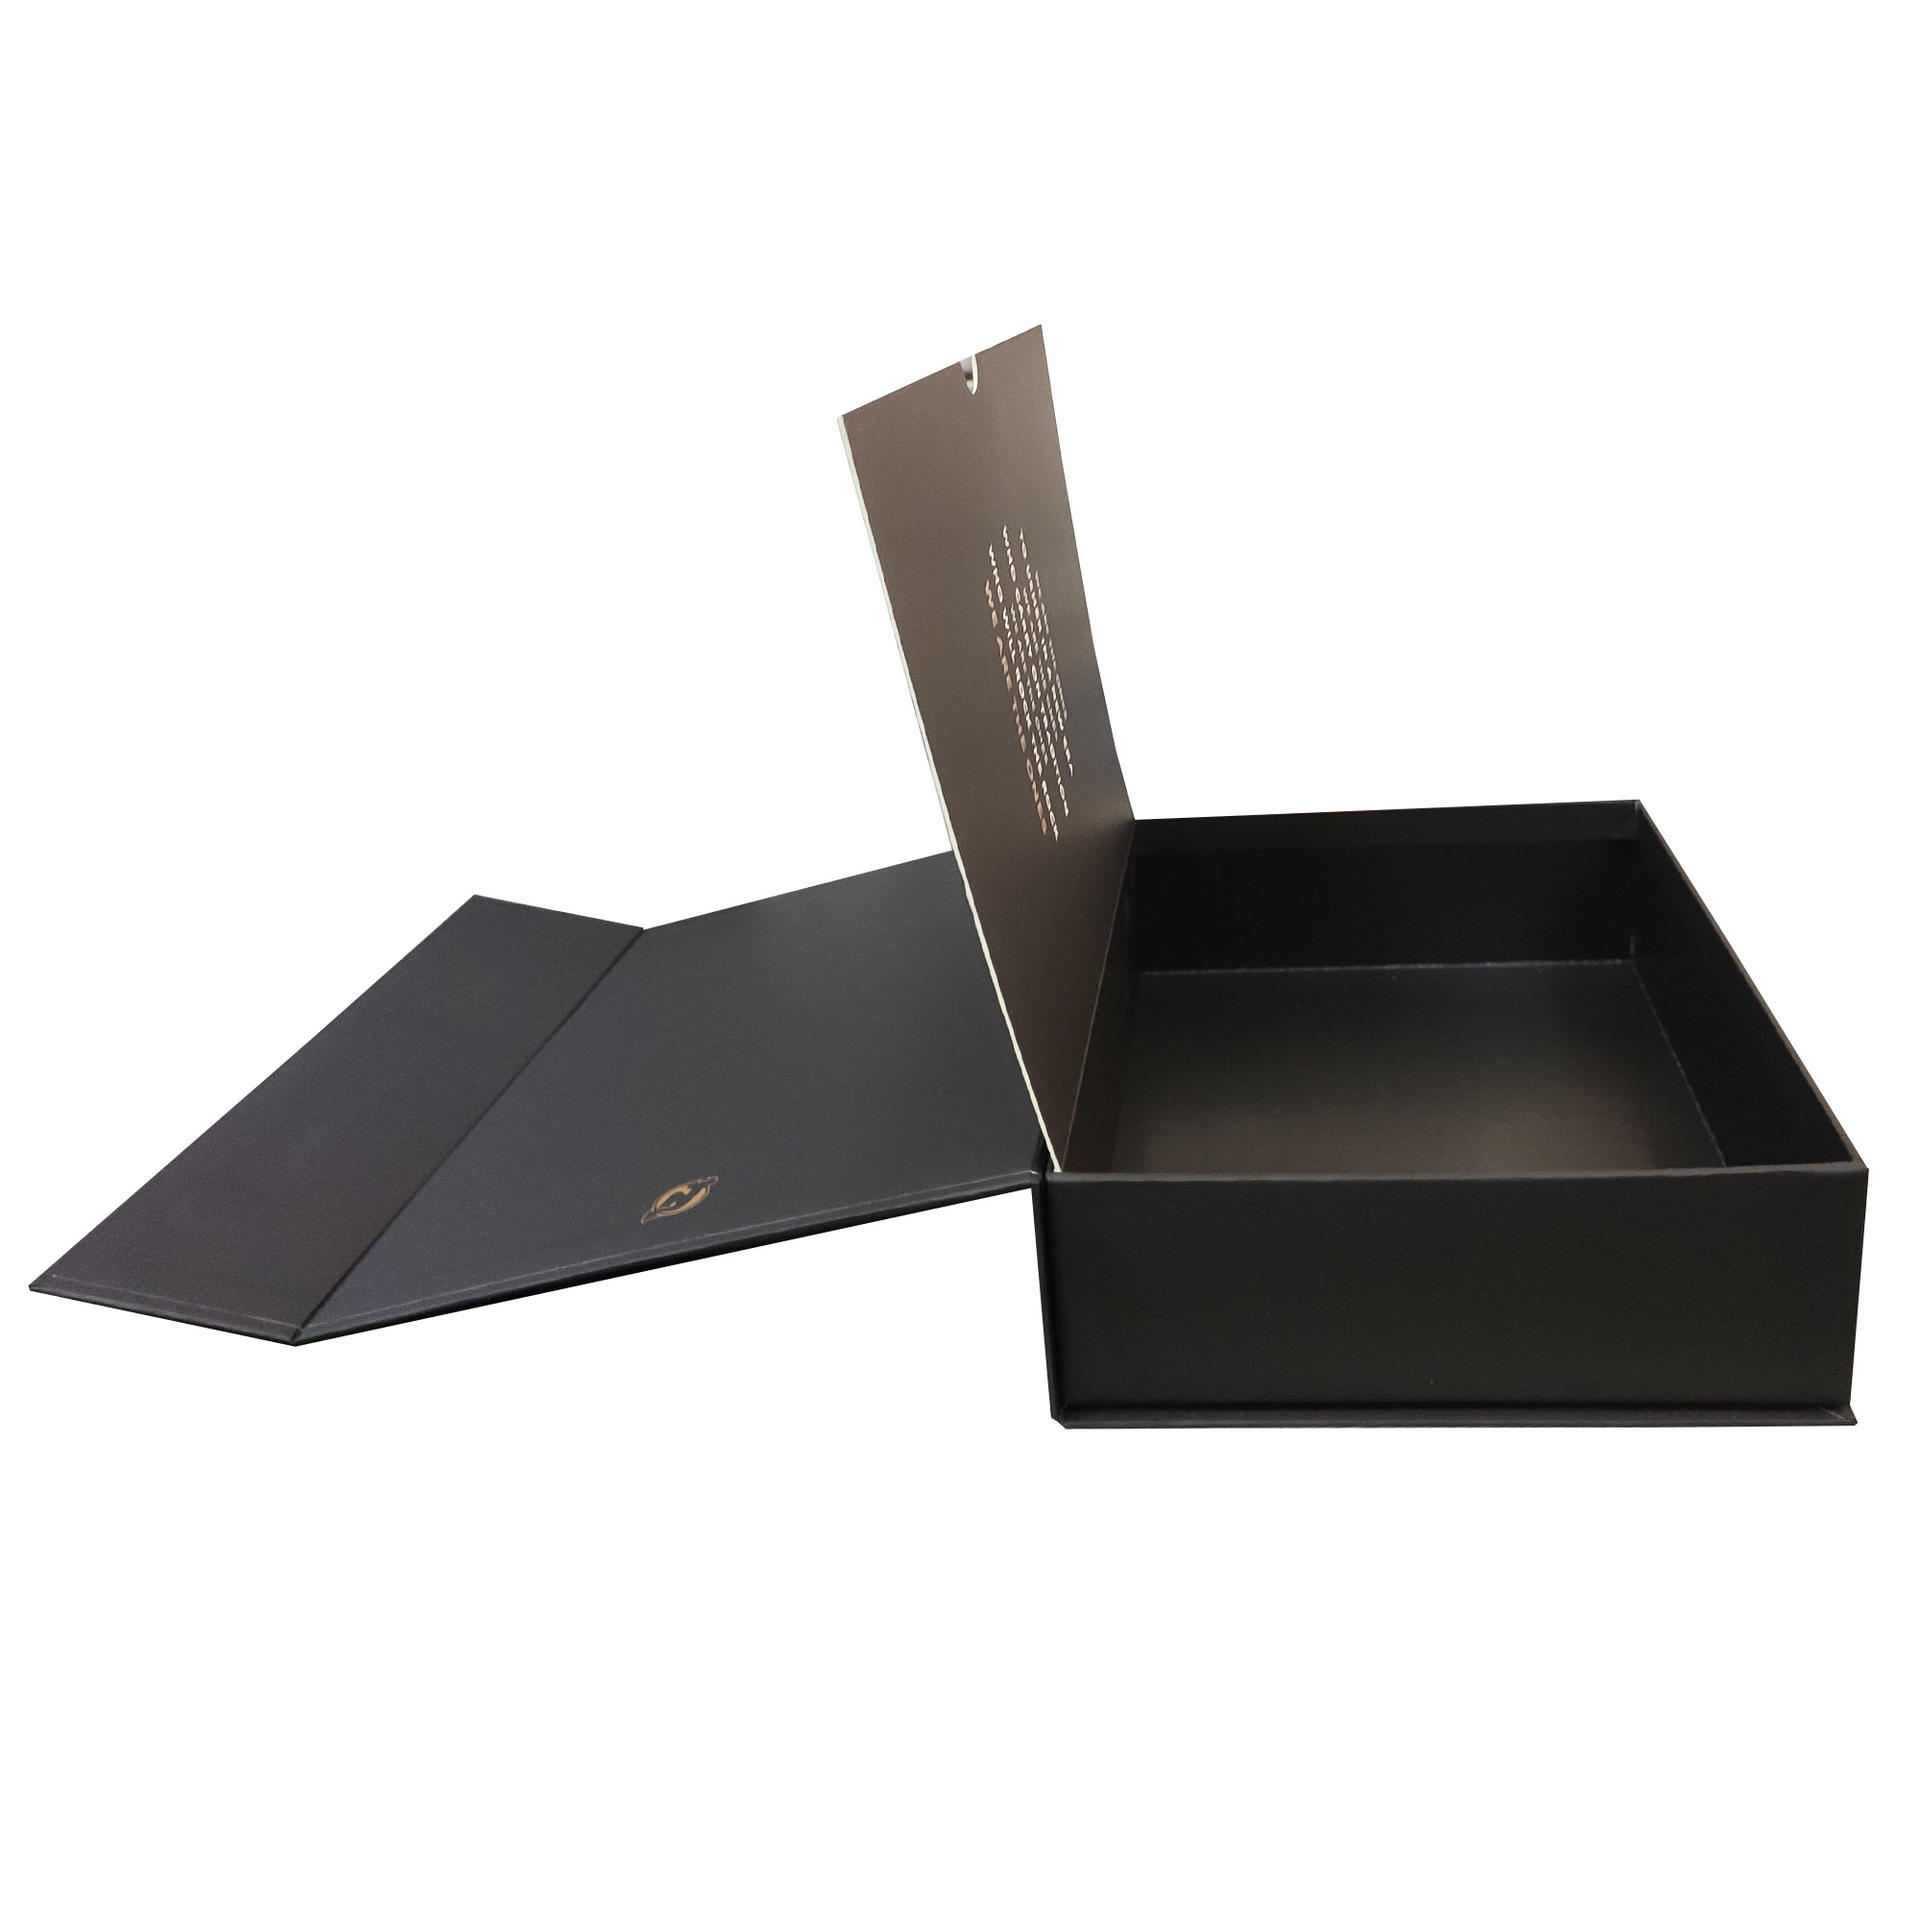 China suppliers oem packaging solution team custom book shape packaging boxes